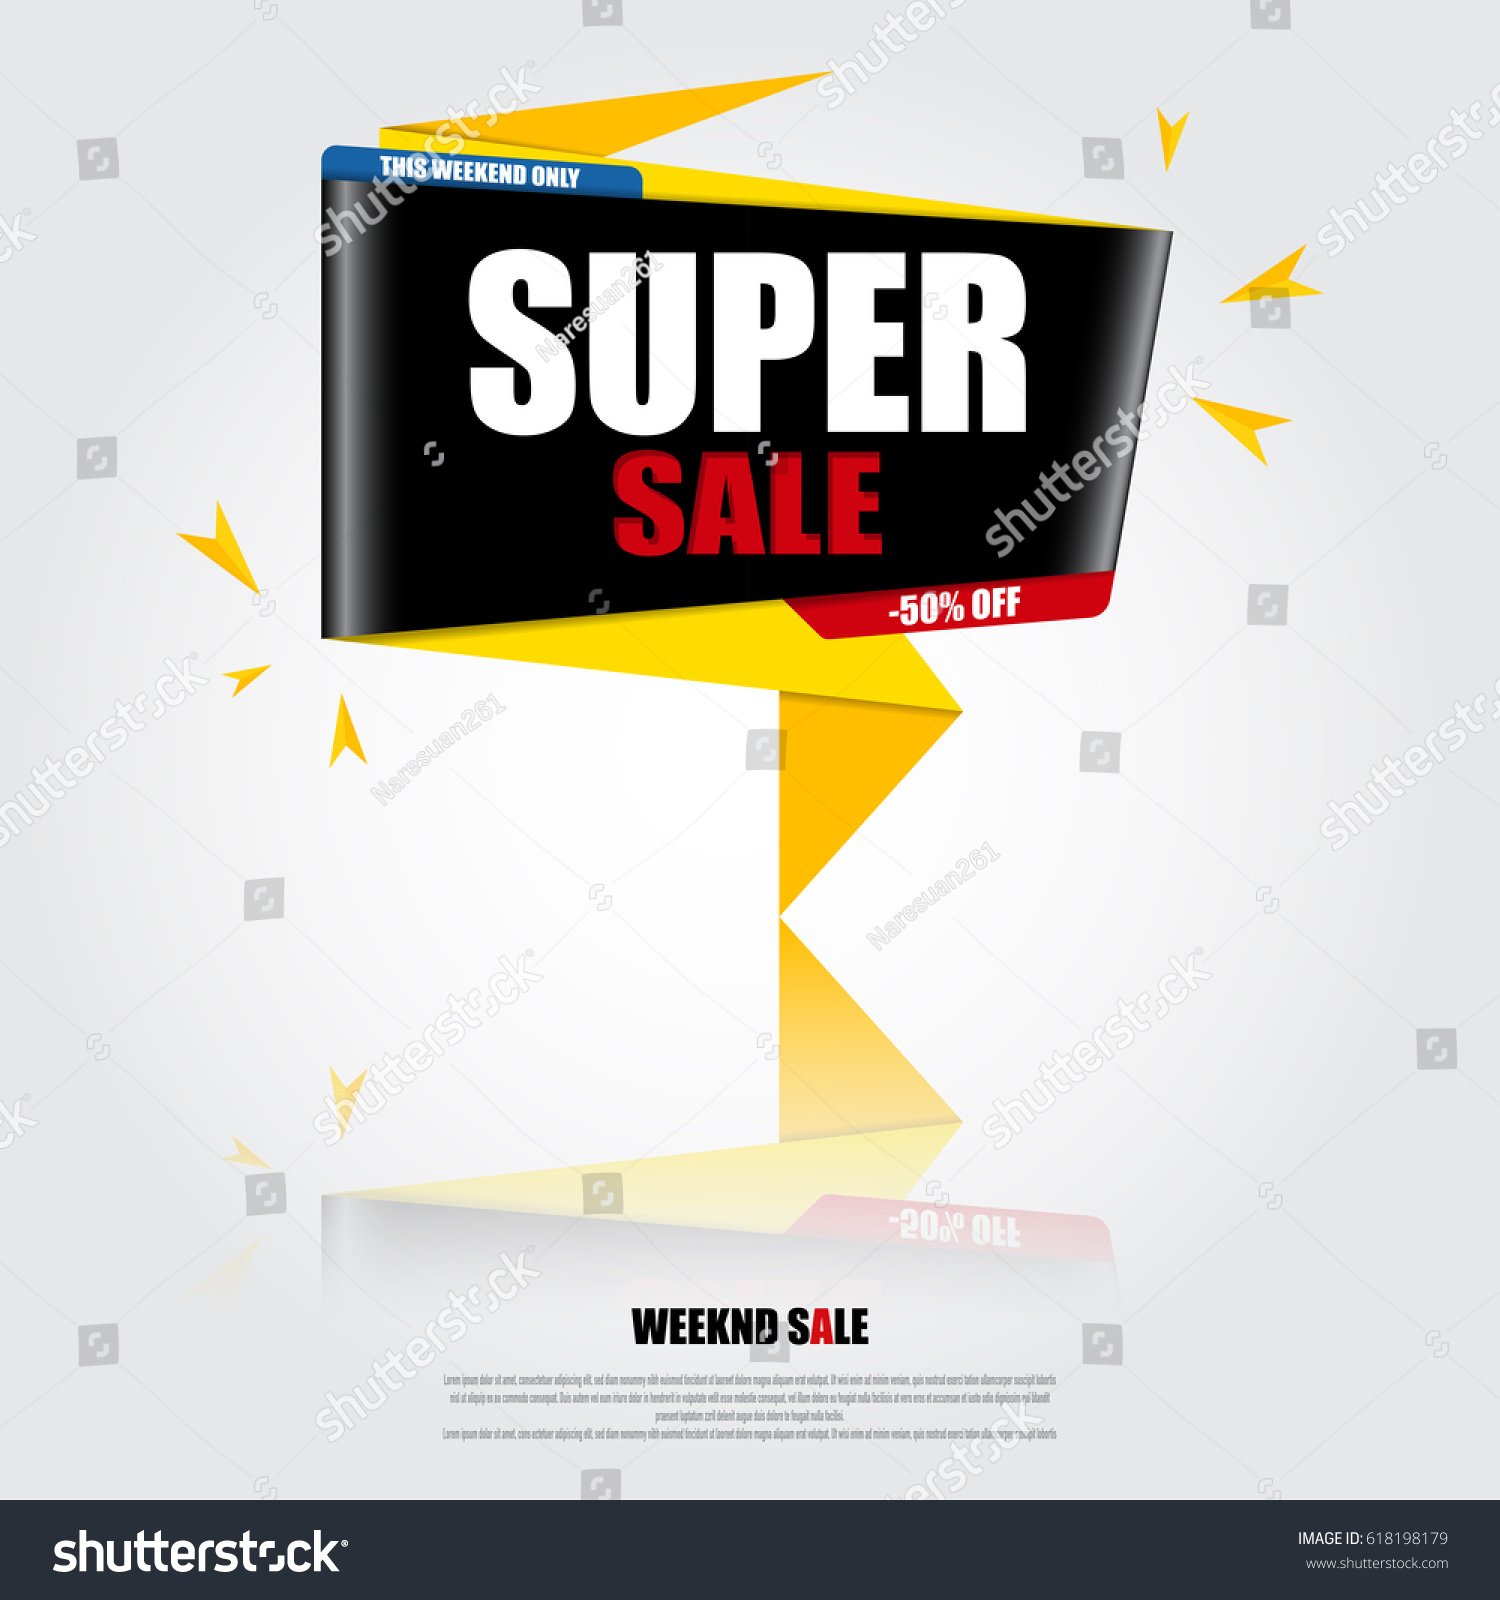 sale banner design template with creative ideas - Banner Design Ideas